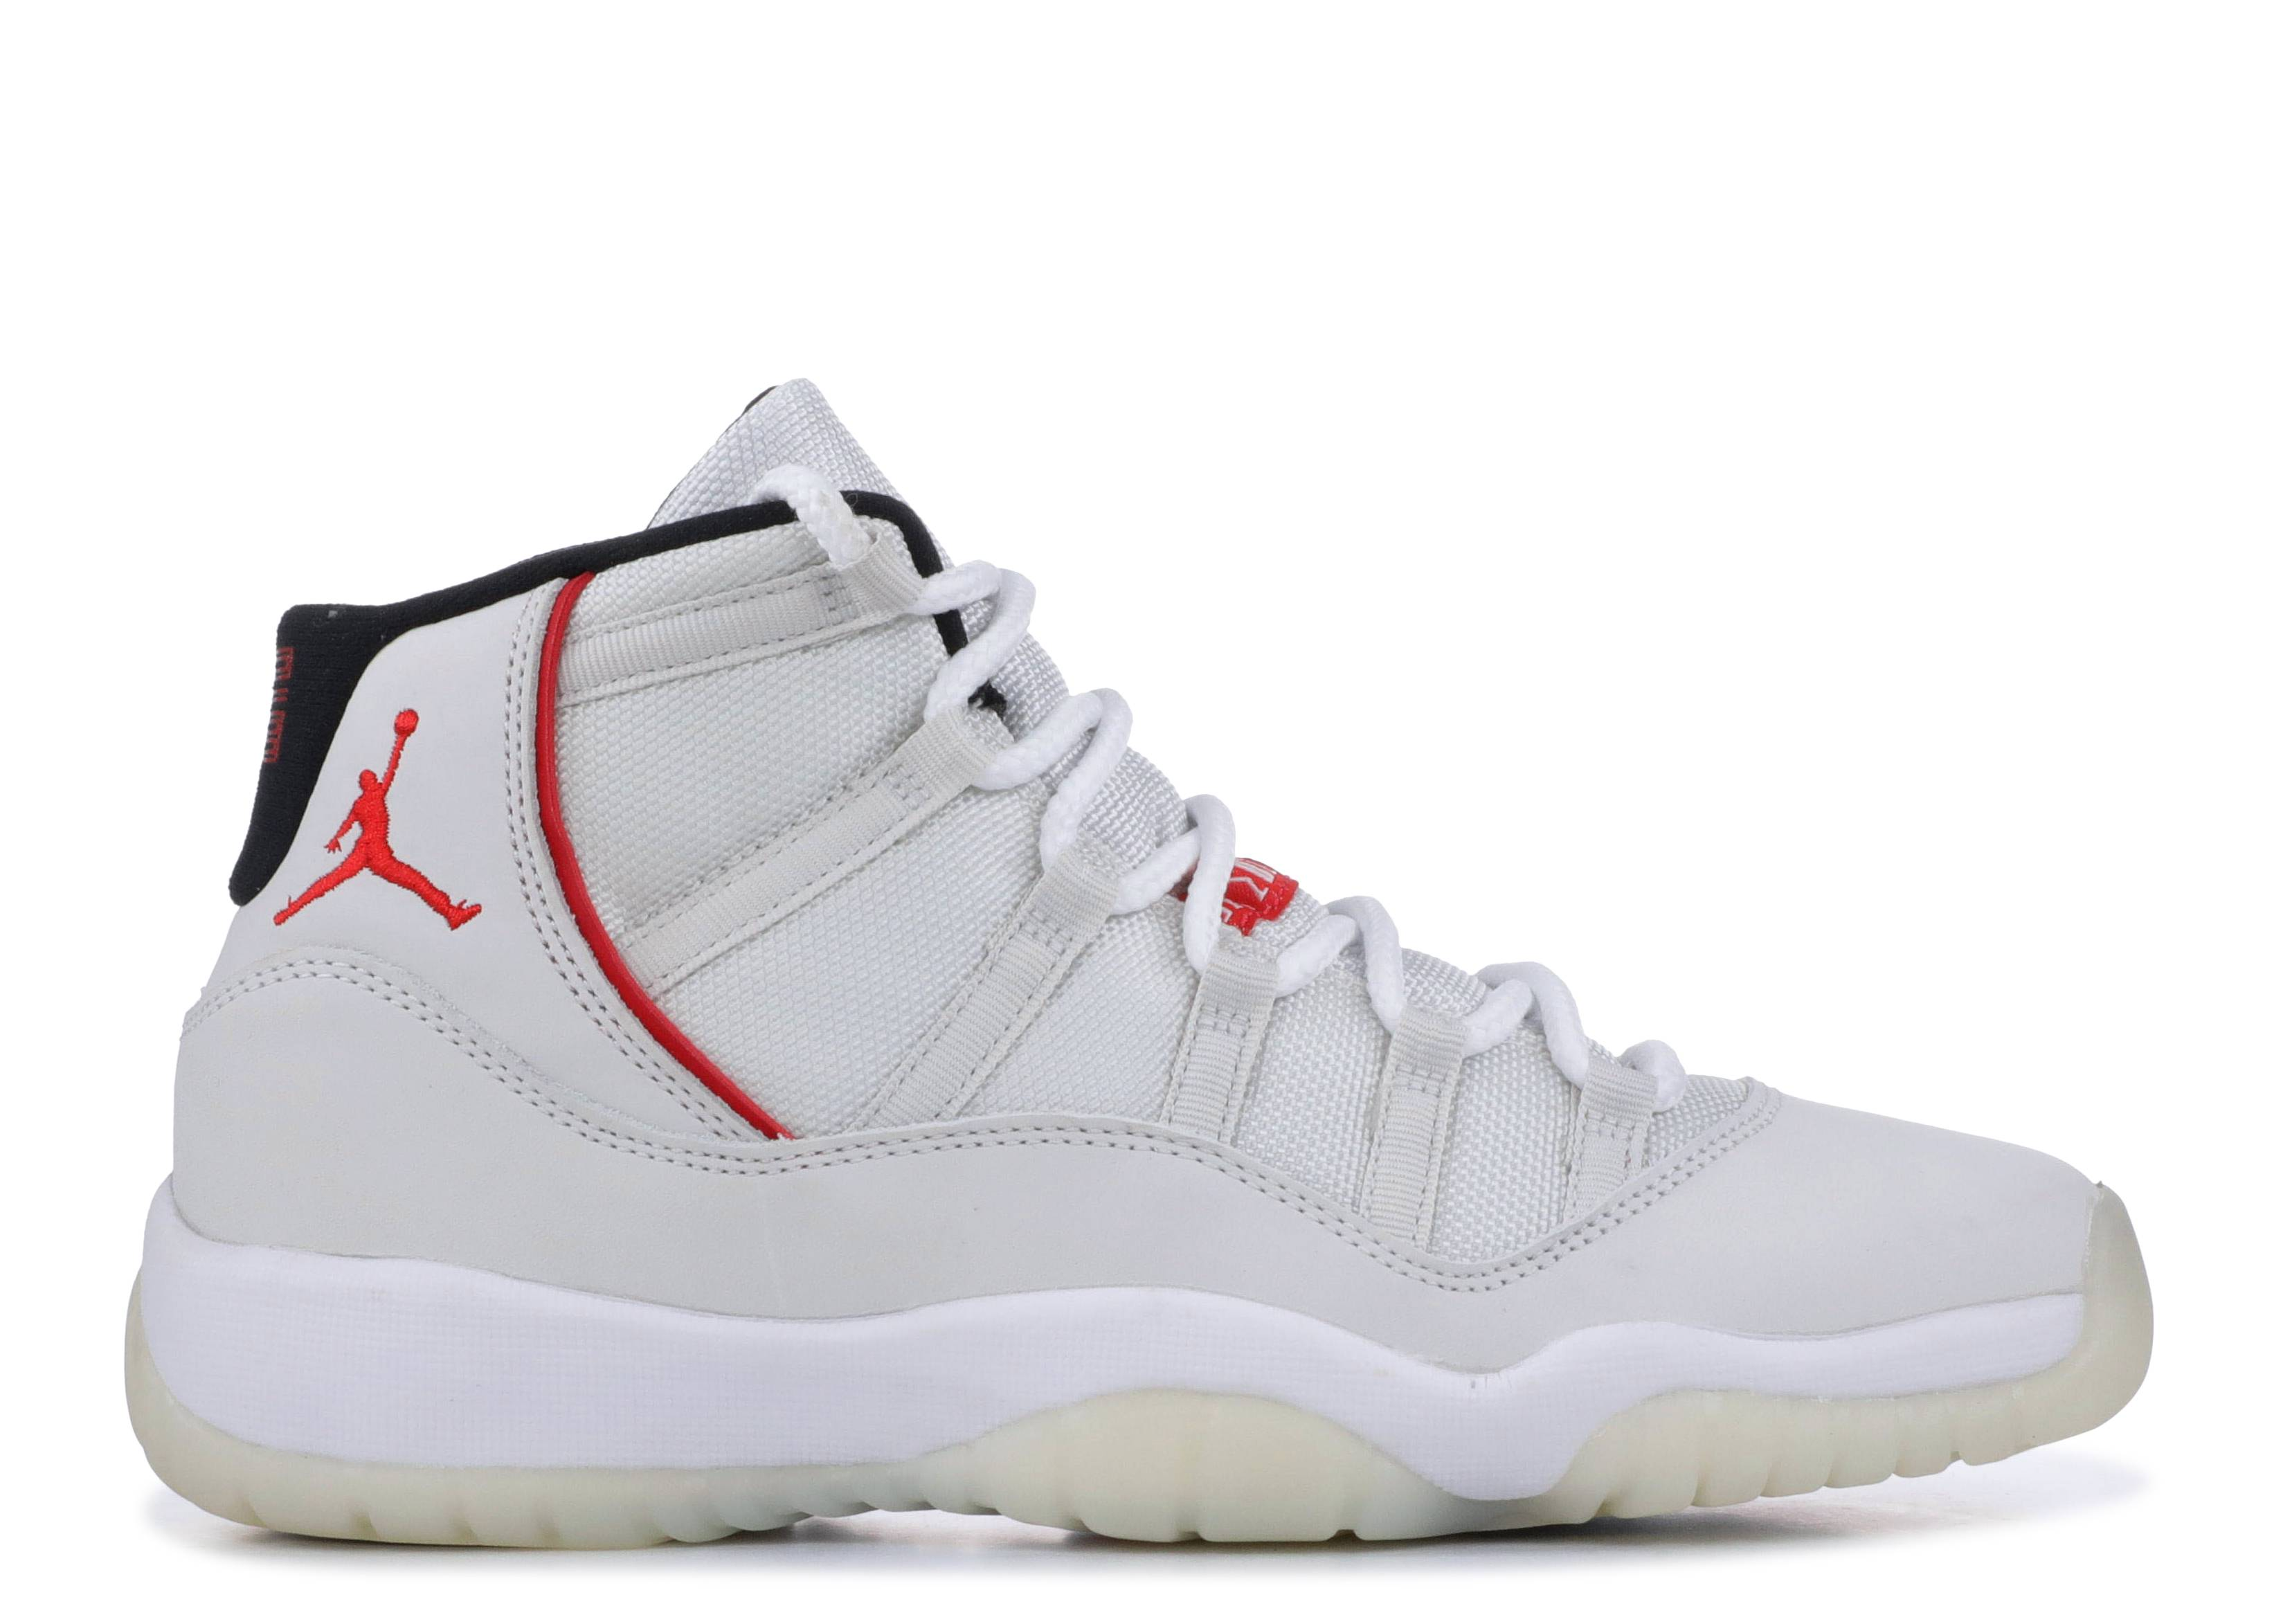 Simulators New Arrival Jordan Retro 11 Platinum Tint Mens Red Logo Basketball Shoes High Cut Outdoor Training Shoes